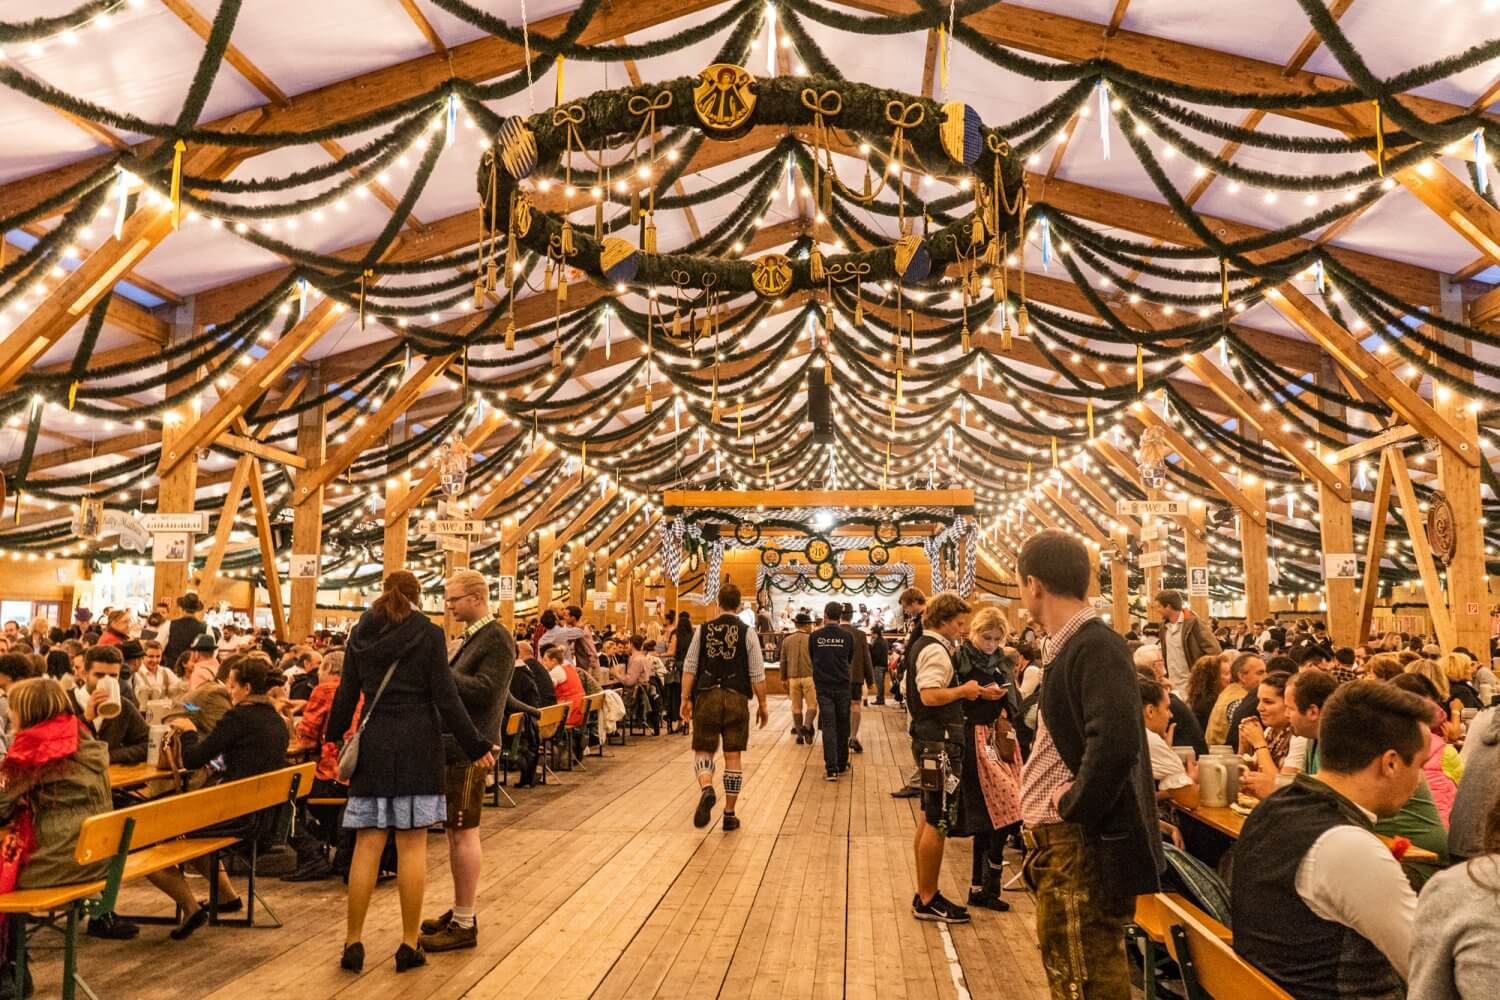 Oide Wiesn at Oktoberfest